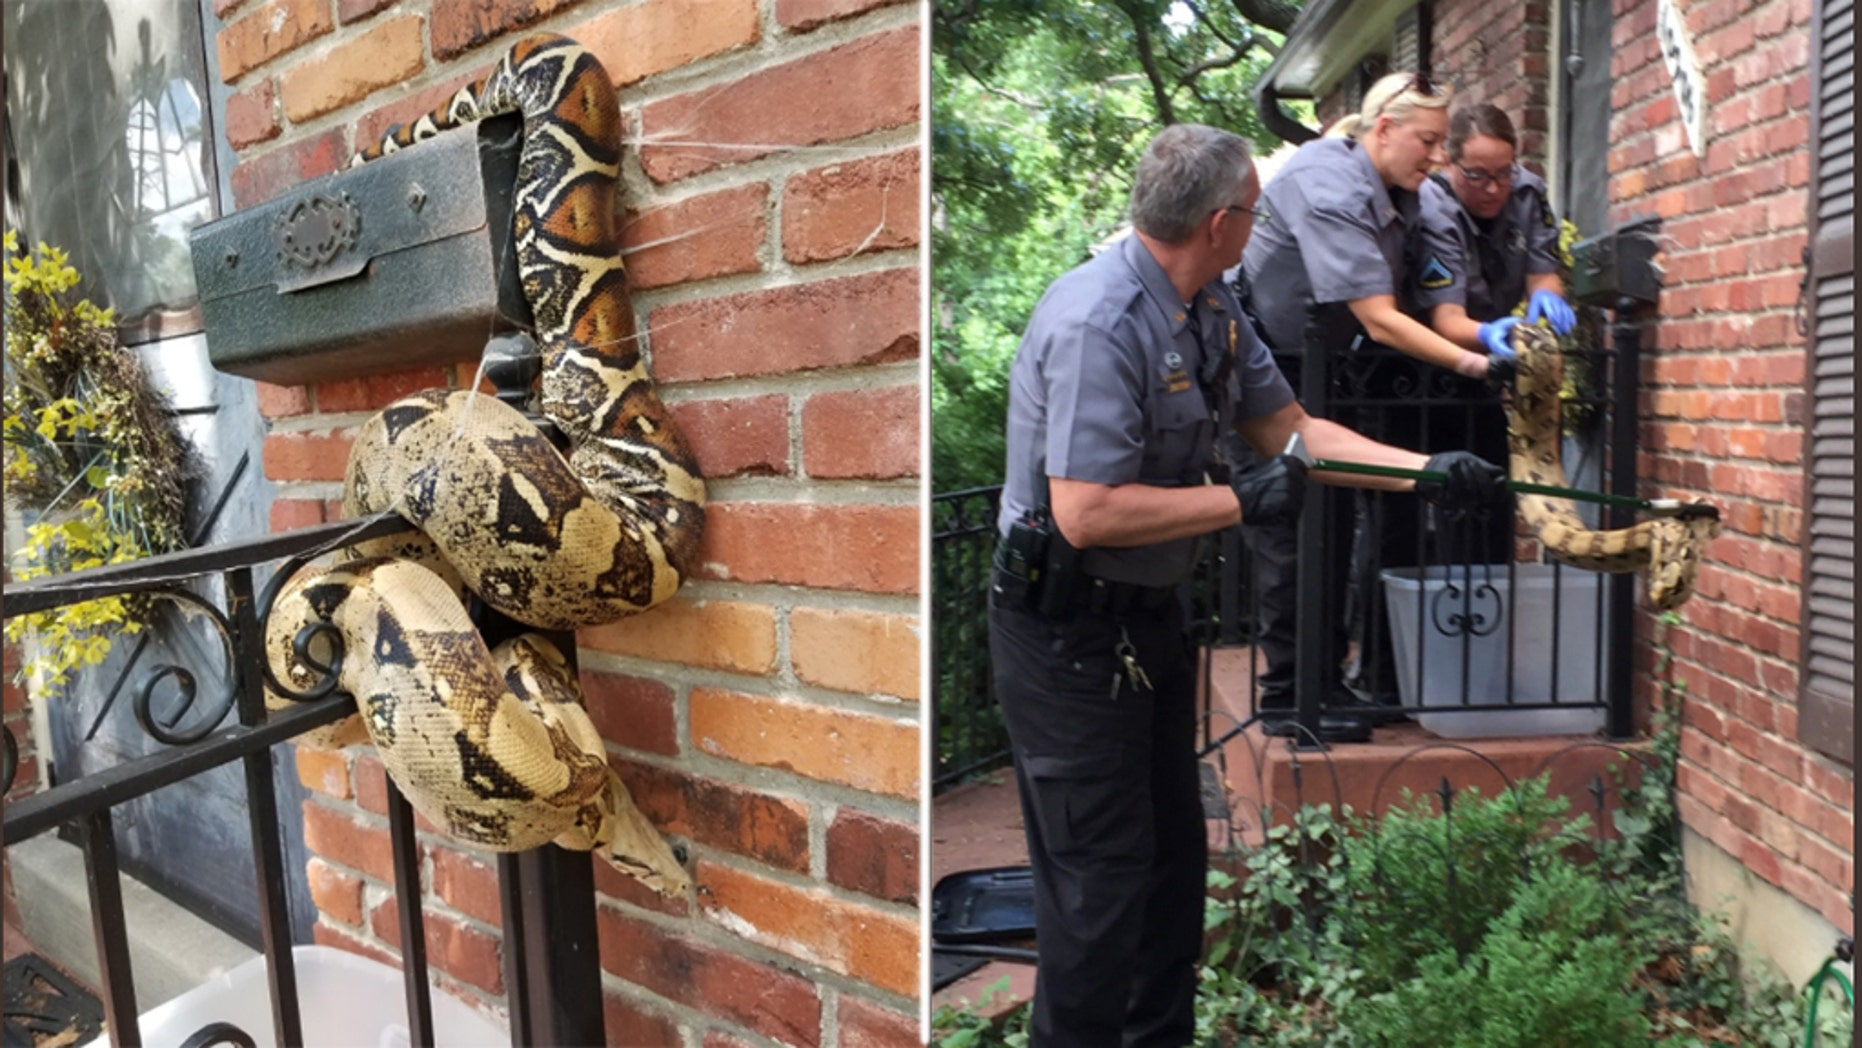 A Kansas letter carrier was unable to carry out some of those Postal Service duties on Friday, after finding a snake on someone's mailbox, police said.